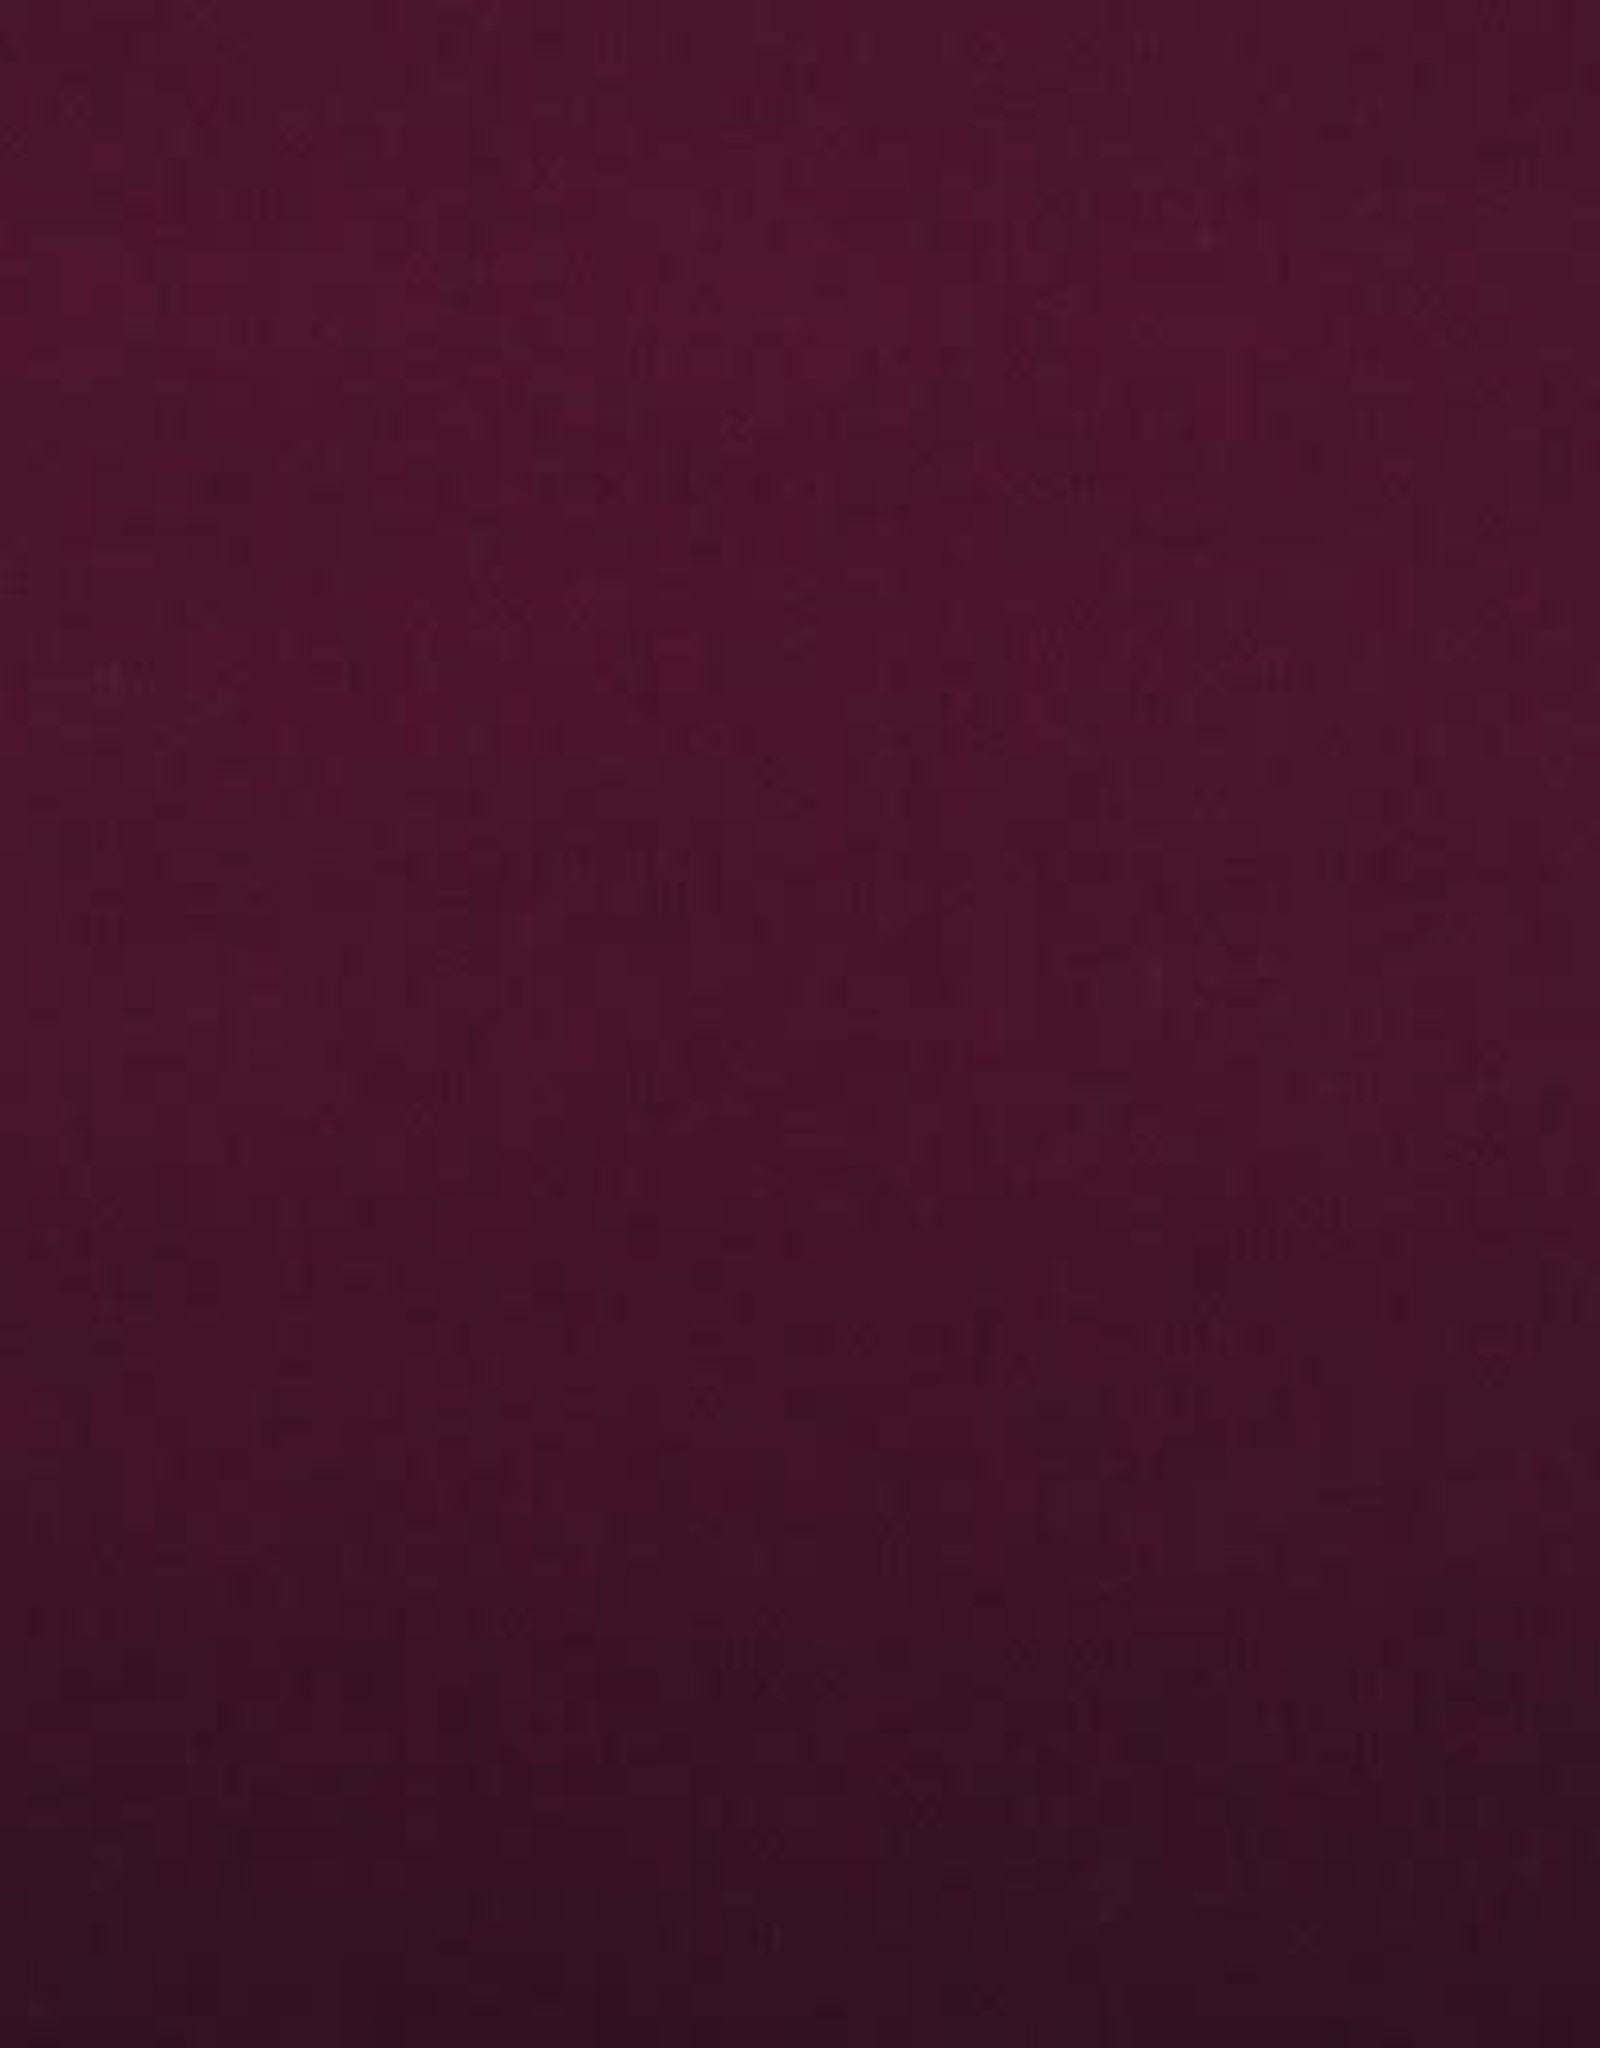 Mantel velour wol mix bordeaux